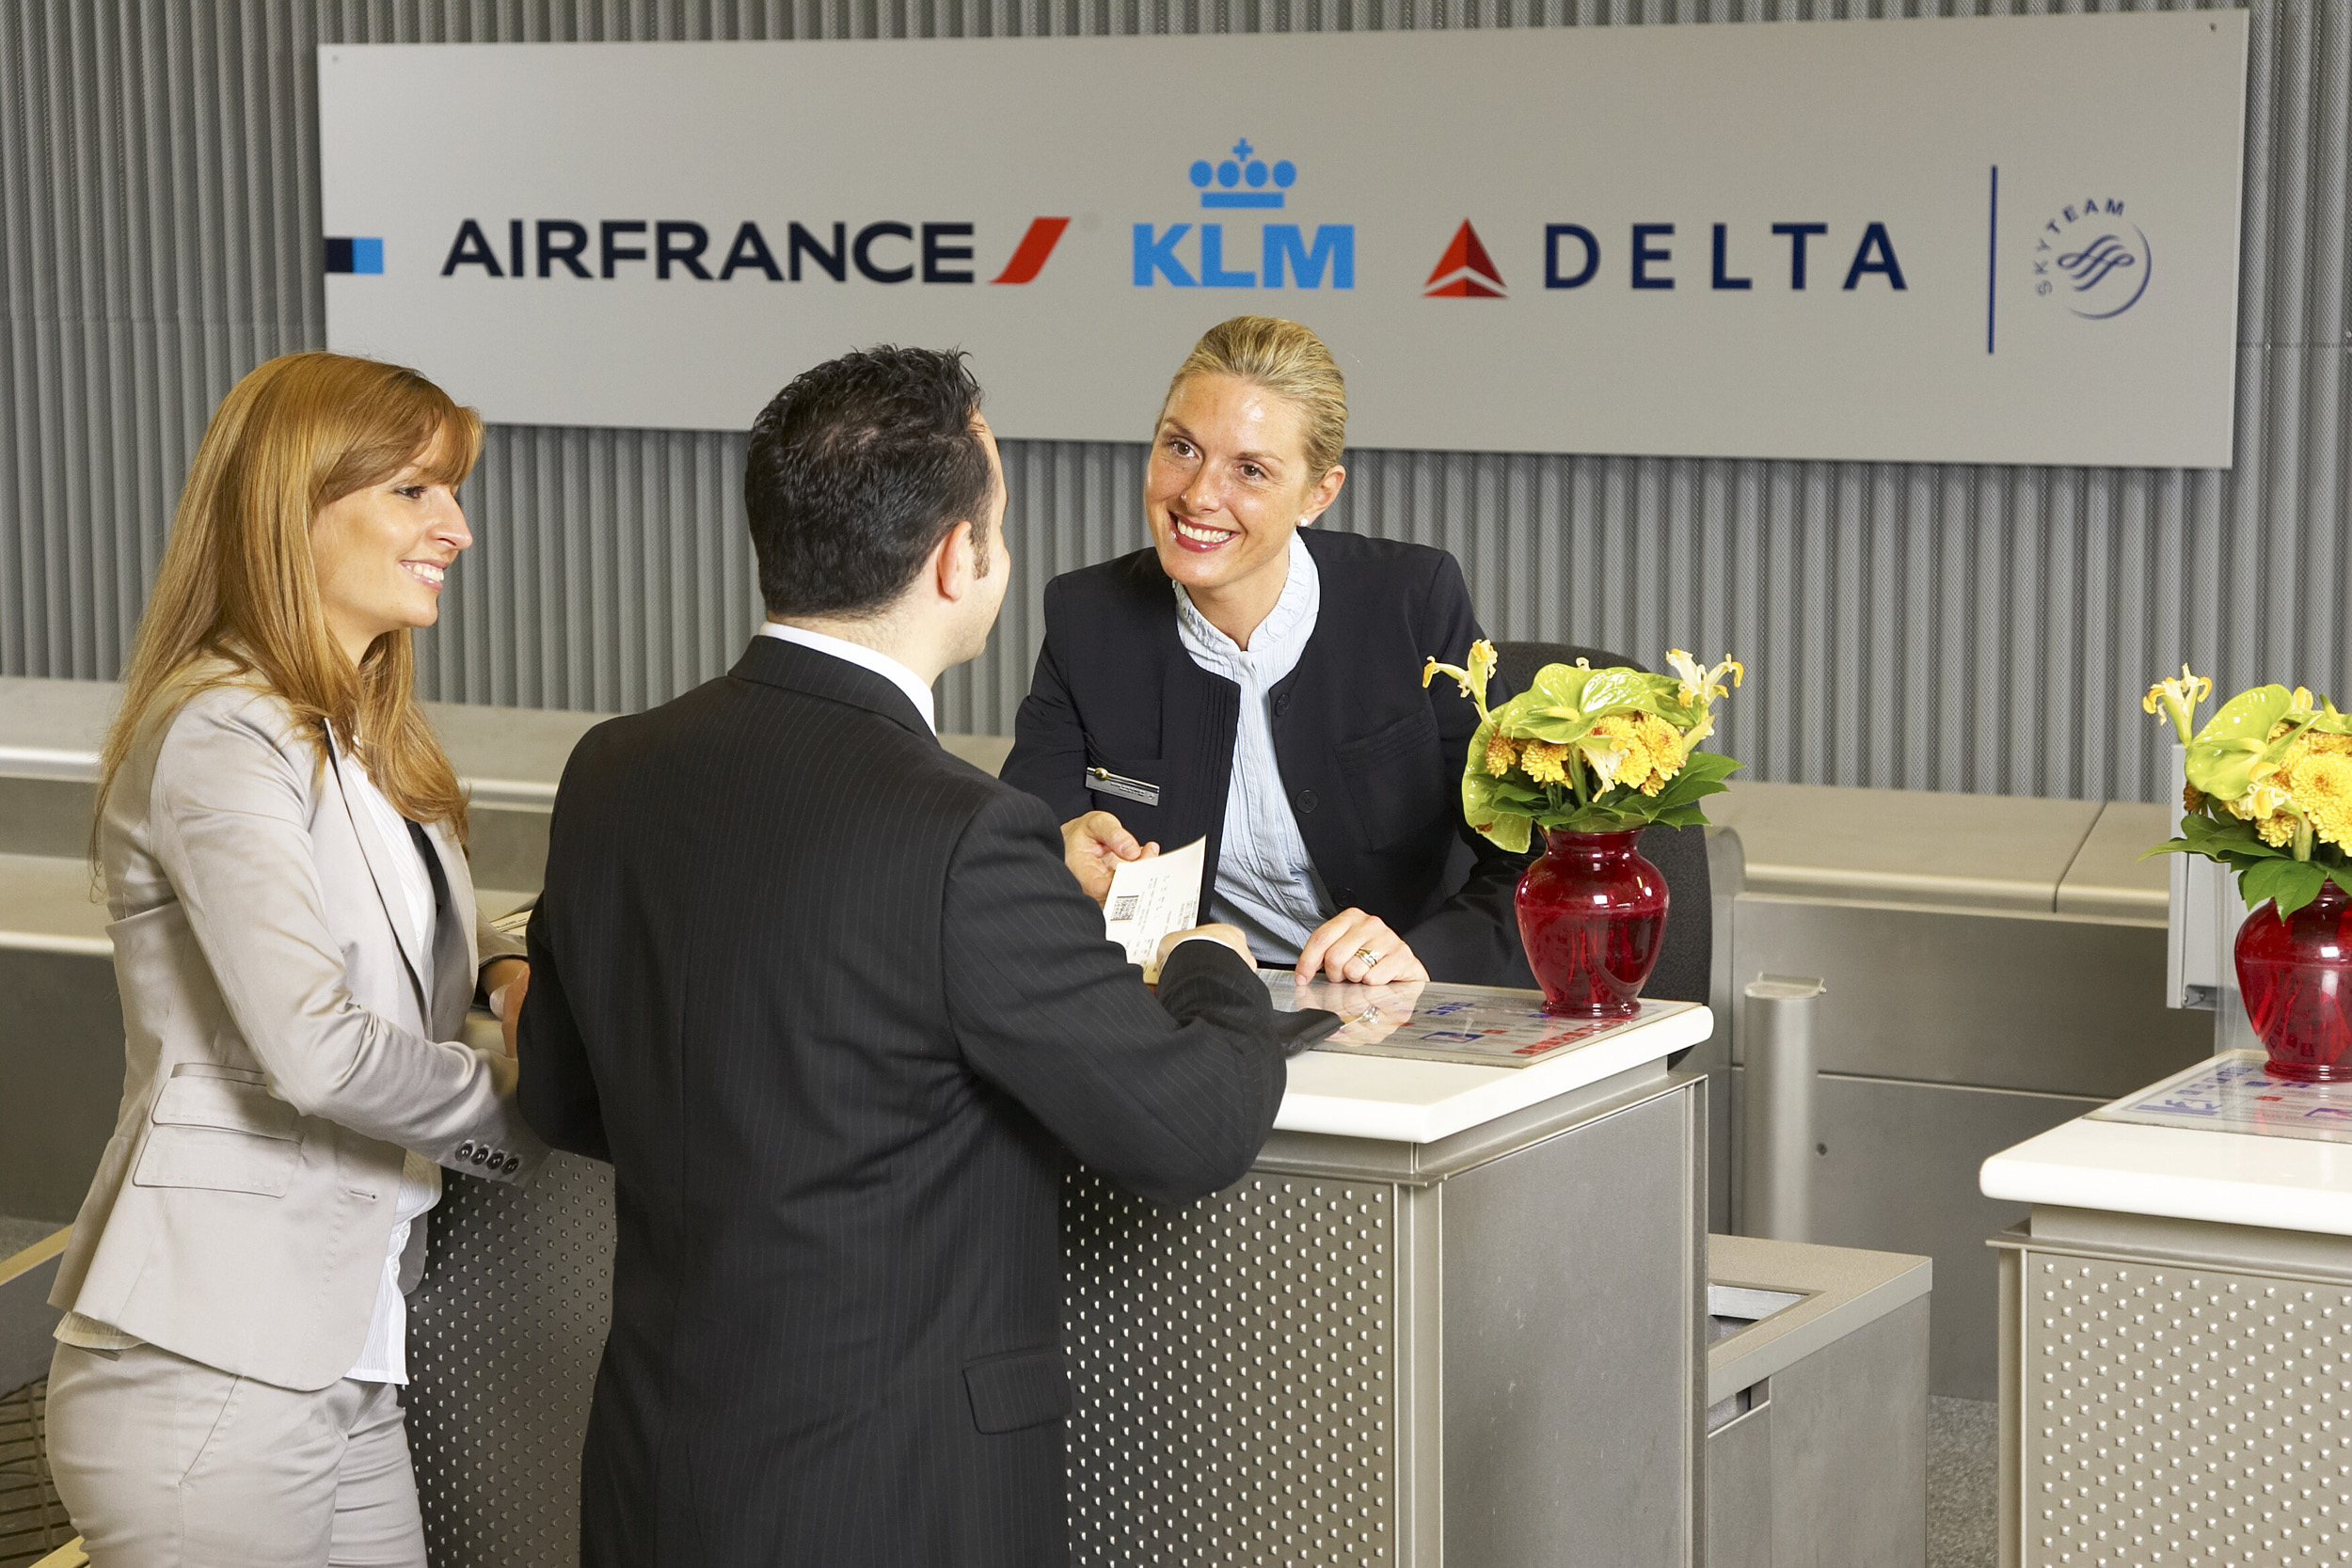 Air France Klm Delta Offer Special Republic Day Sale In